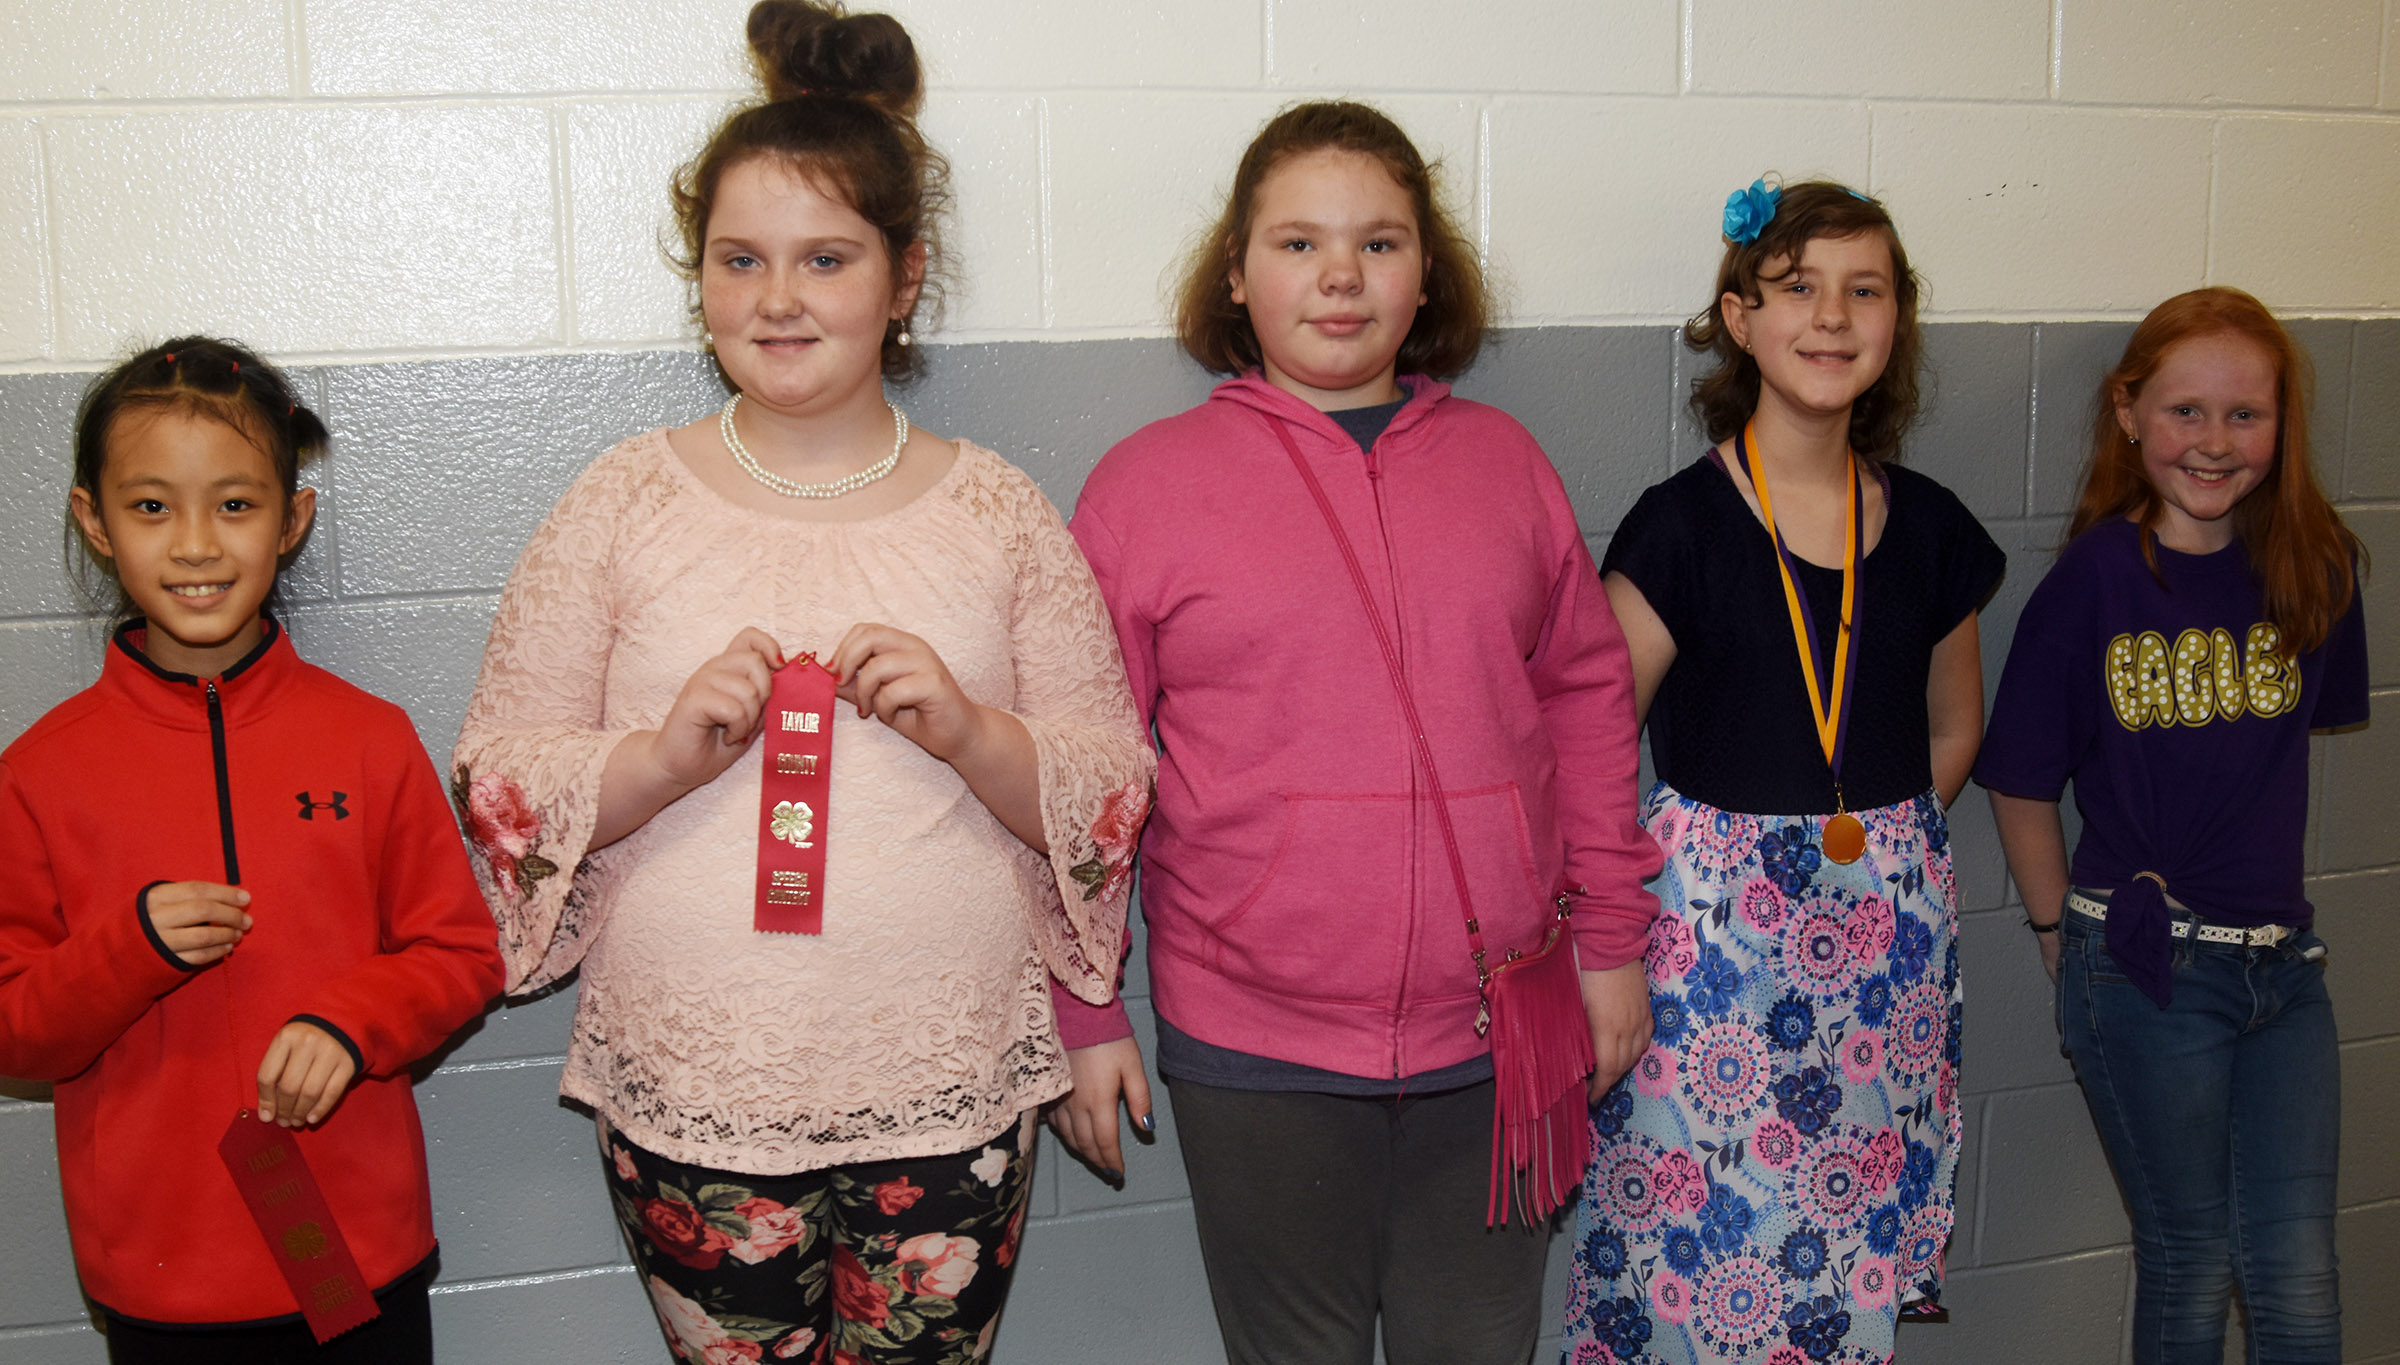 From left, CES fourth-graders Demi Hao and Madison Philpott, fifth-graders Averi Perkins and Bryanna Fitzgerald and fourth-grader Nora Harris participated in the Taylor County 4-H Talk Meet. Hao and Philpott won red ribbons and Perkins, Fitzgerald and Harris were awarded blue ribbons.